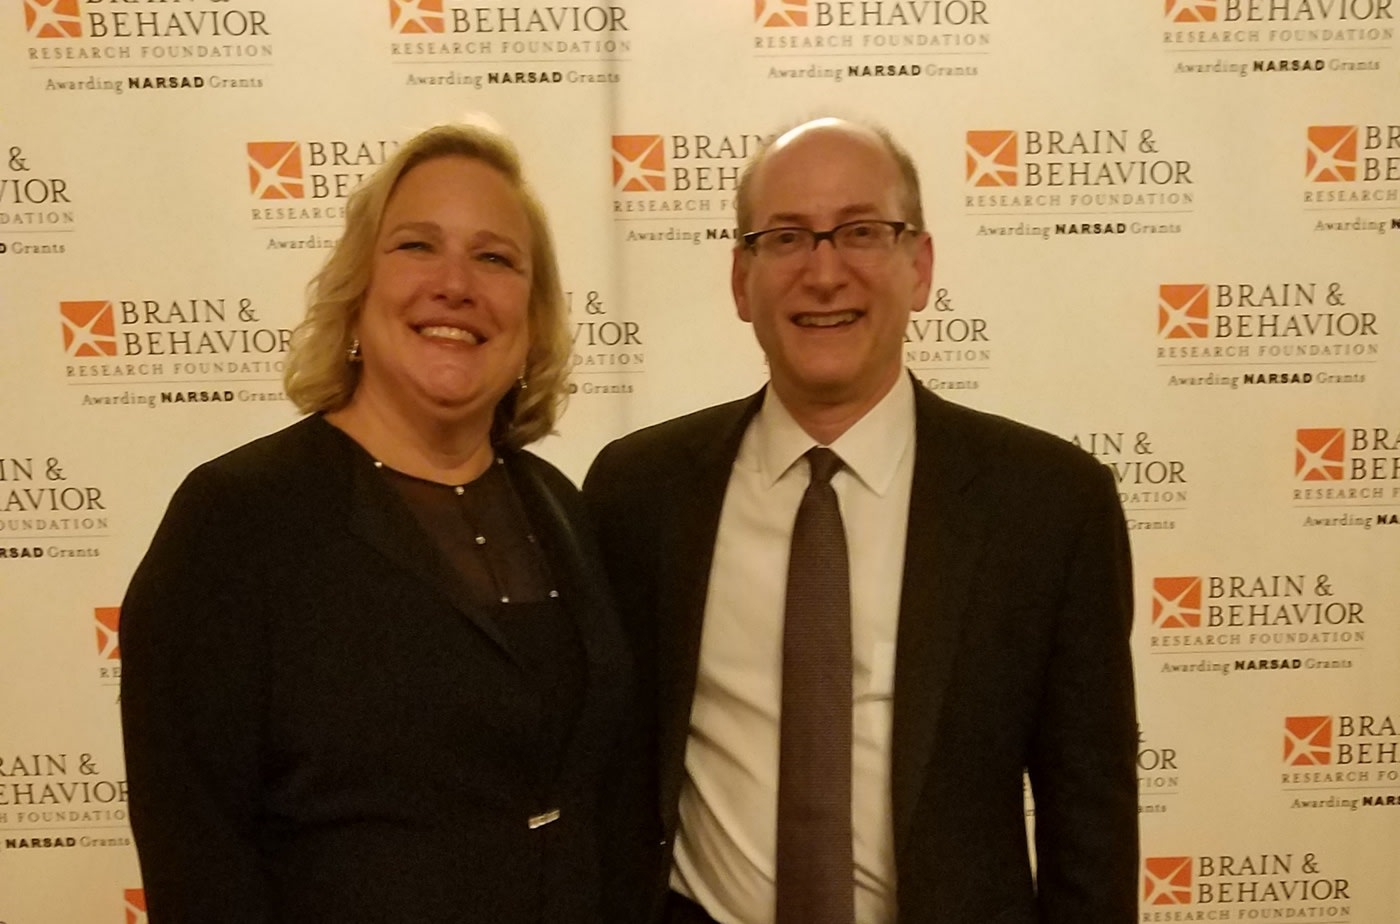 Blumberg Receives Colvin Prize for Outstanding Achievement in Mood Disorders Research